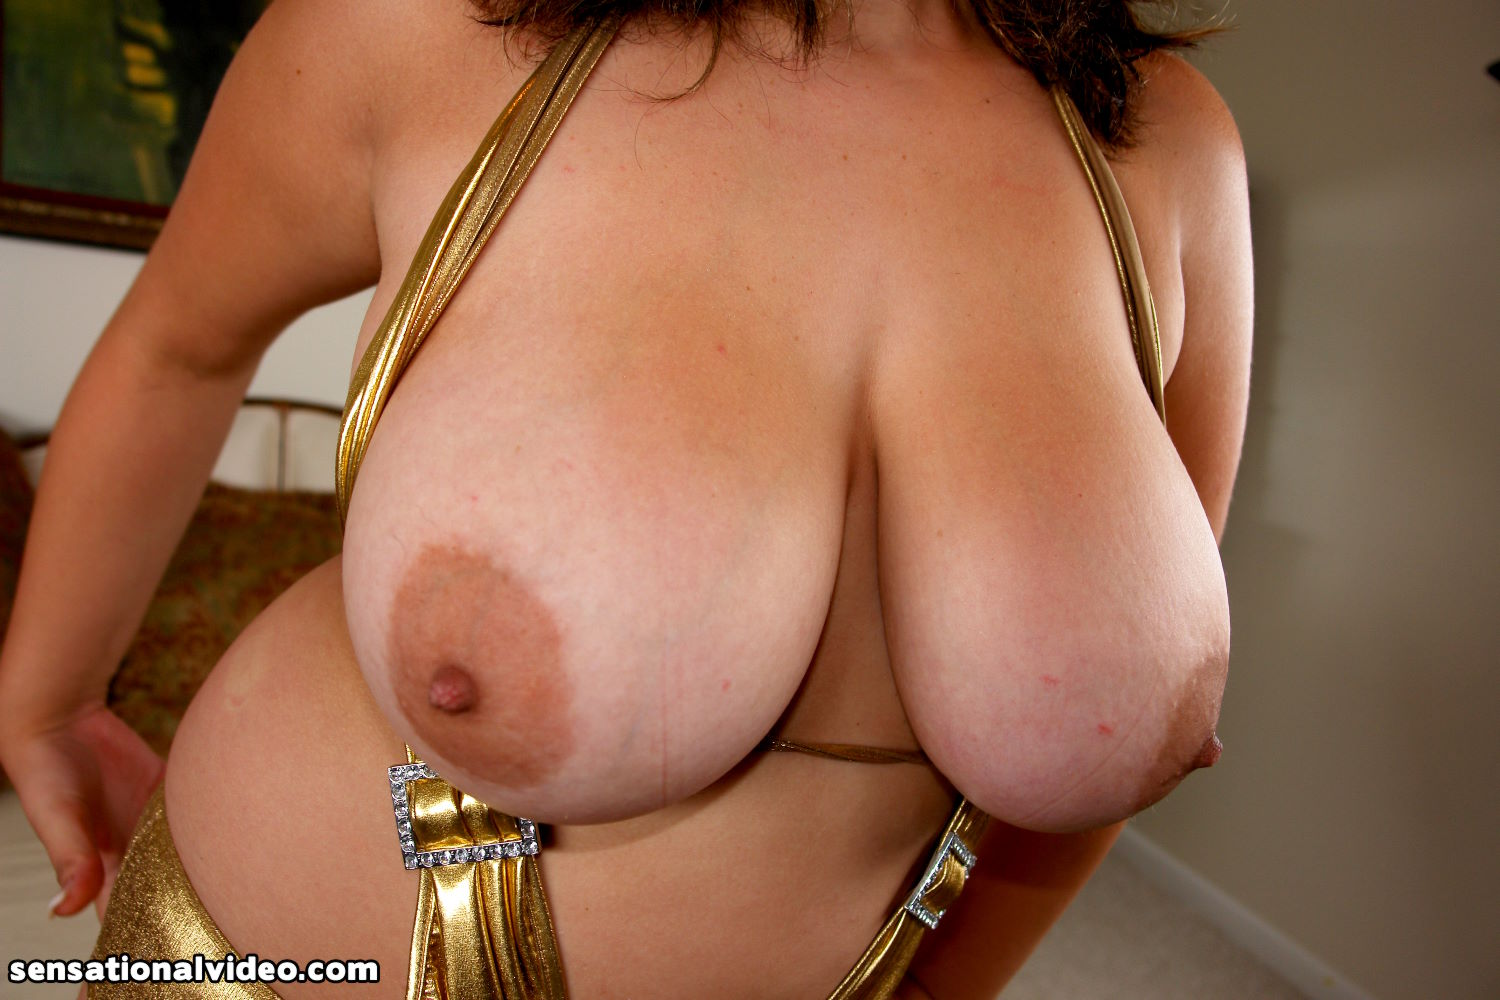 lesgalls spicytitties plumperpass gal102 pic 13